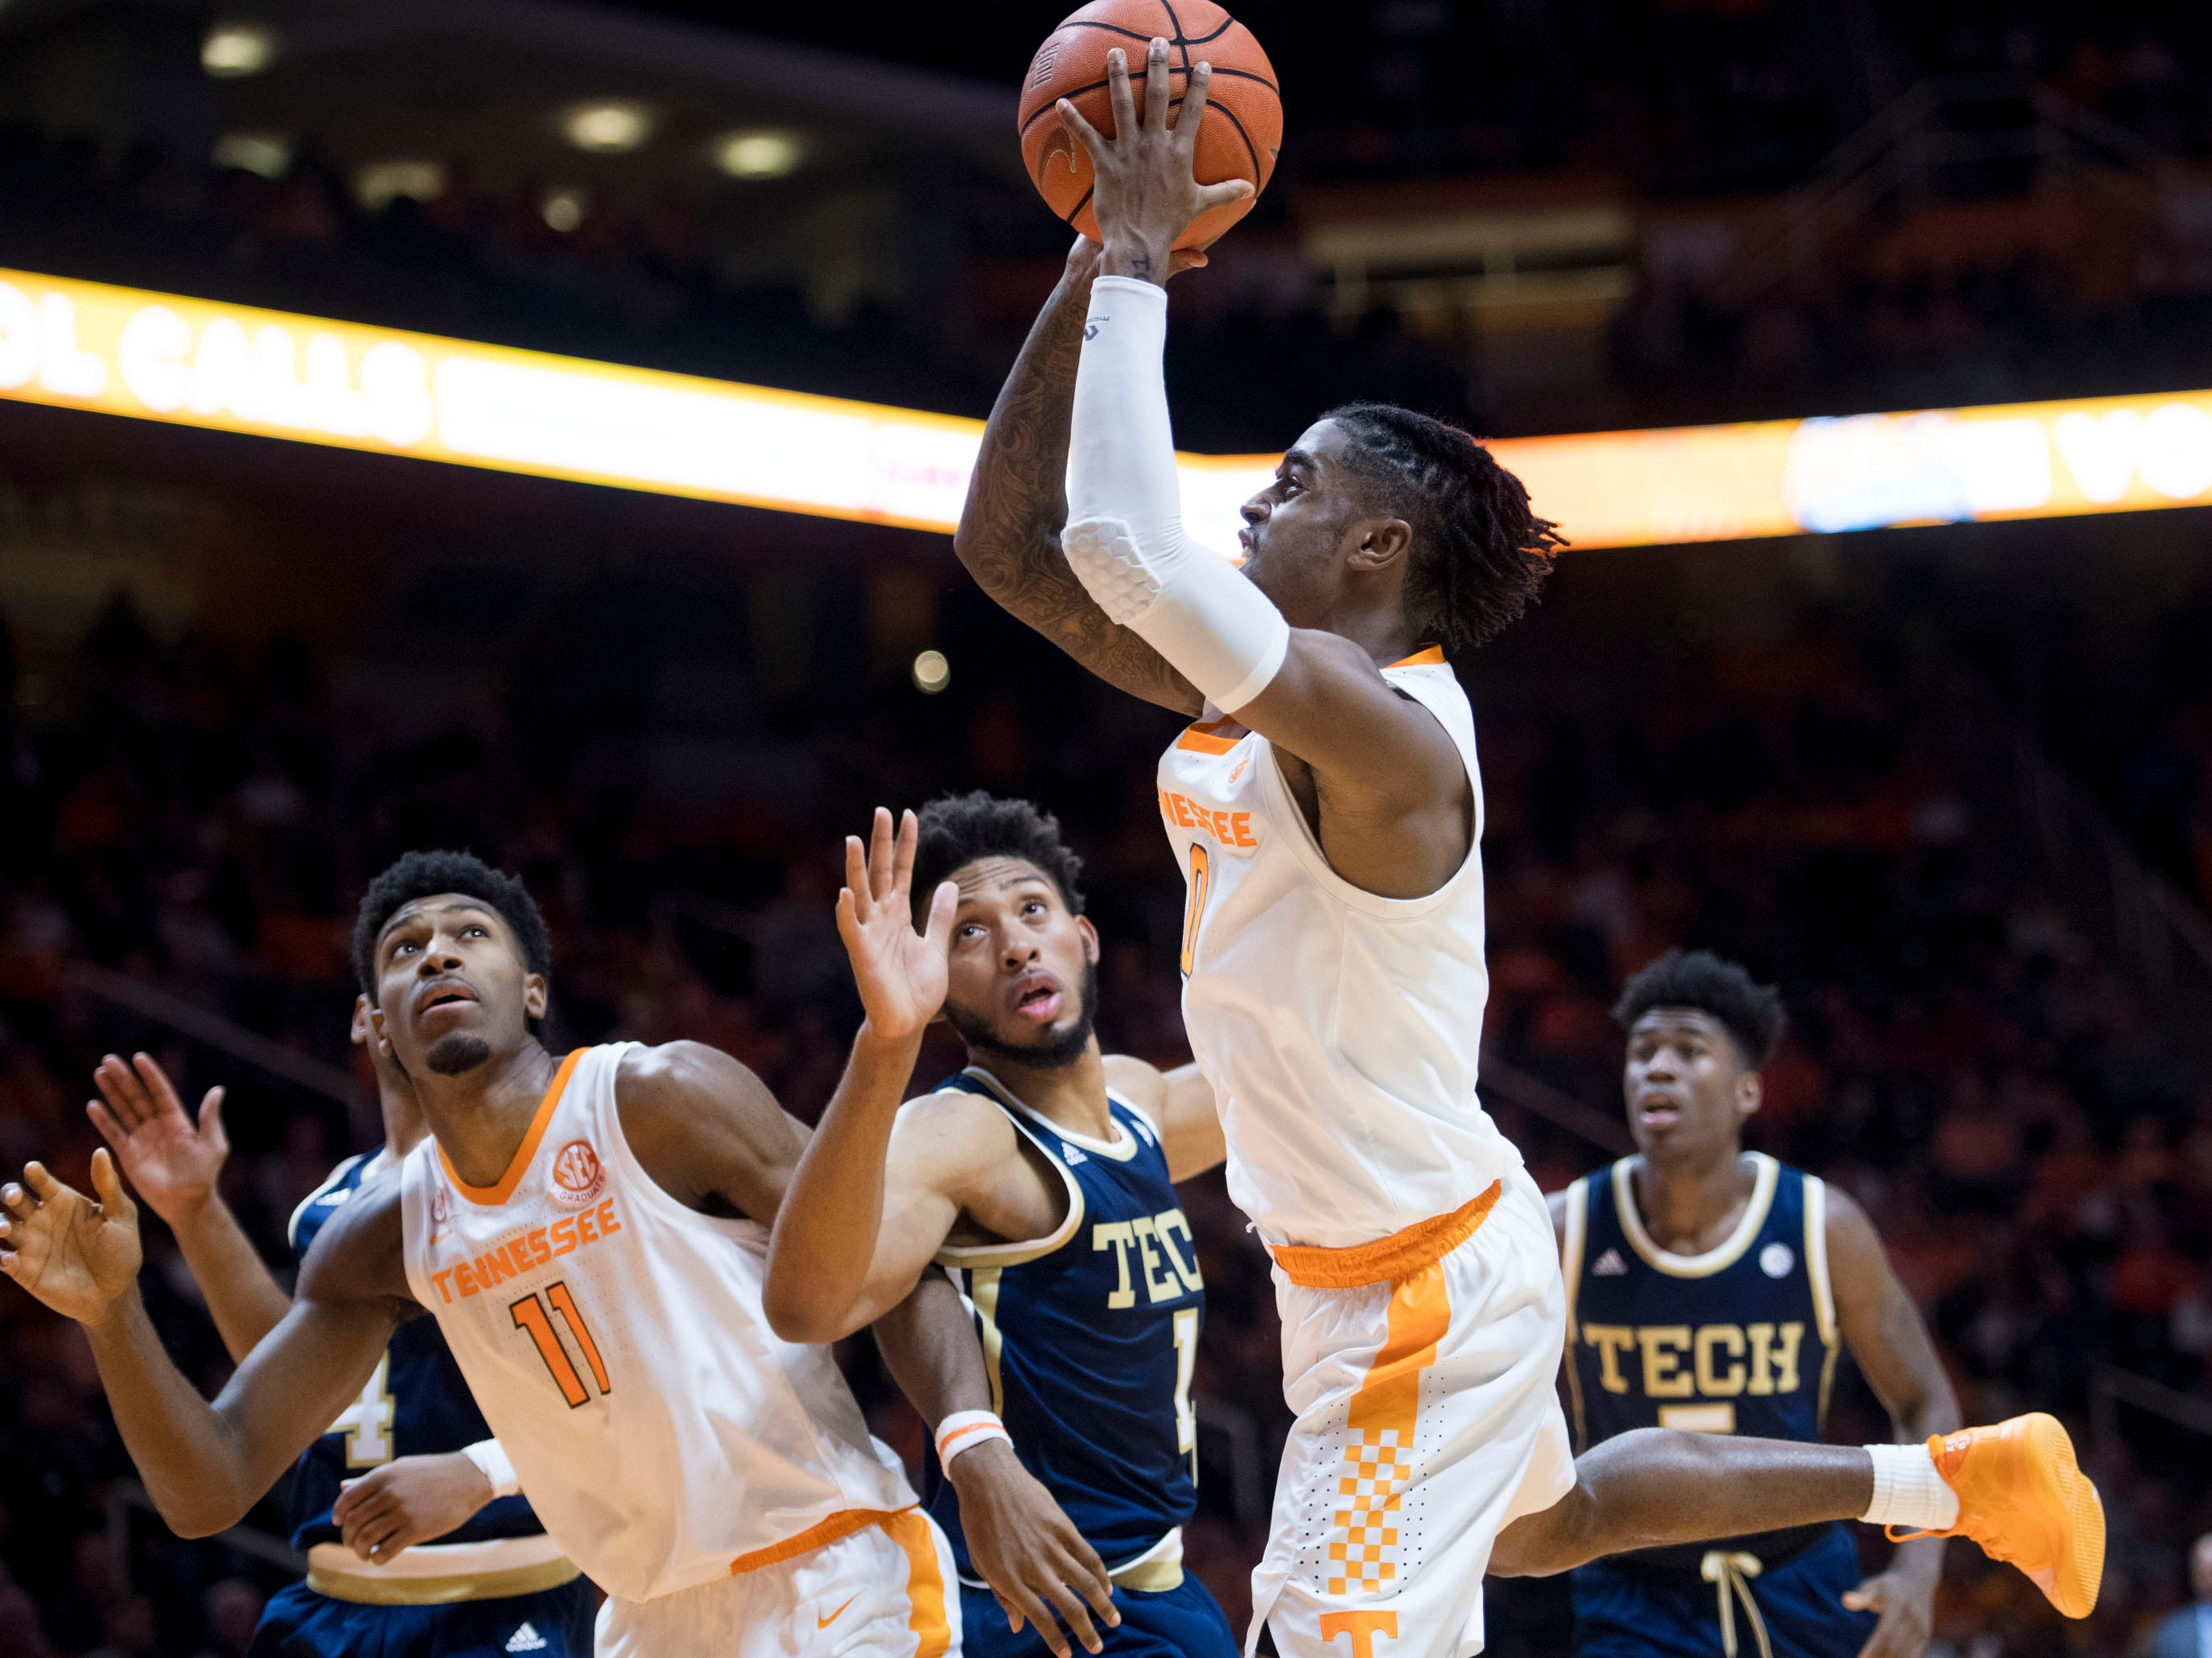 Tennessee's Jordan Bone (0) take a shot at the basket during the game against Georgia Tech on Wednesday, November 14, 2018.